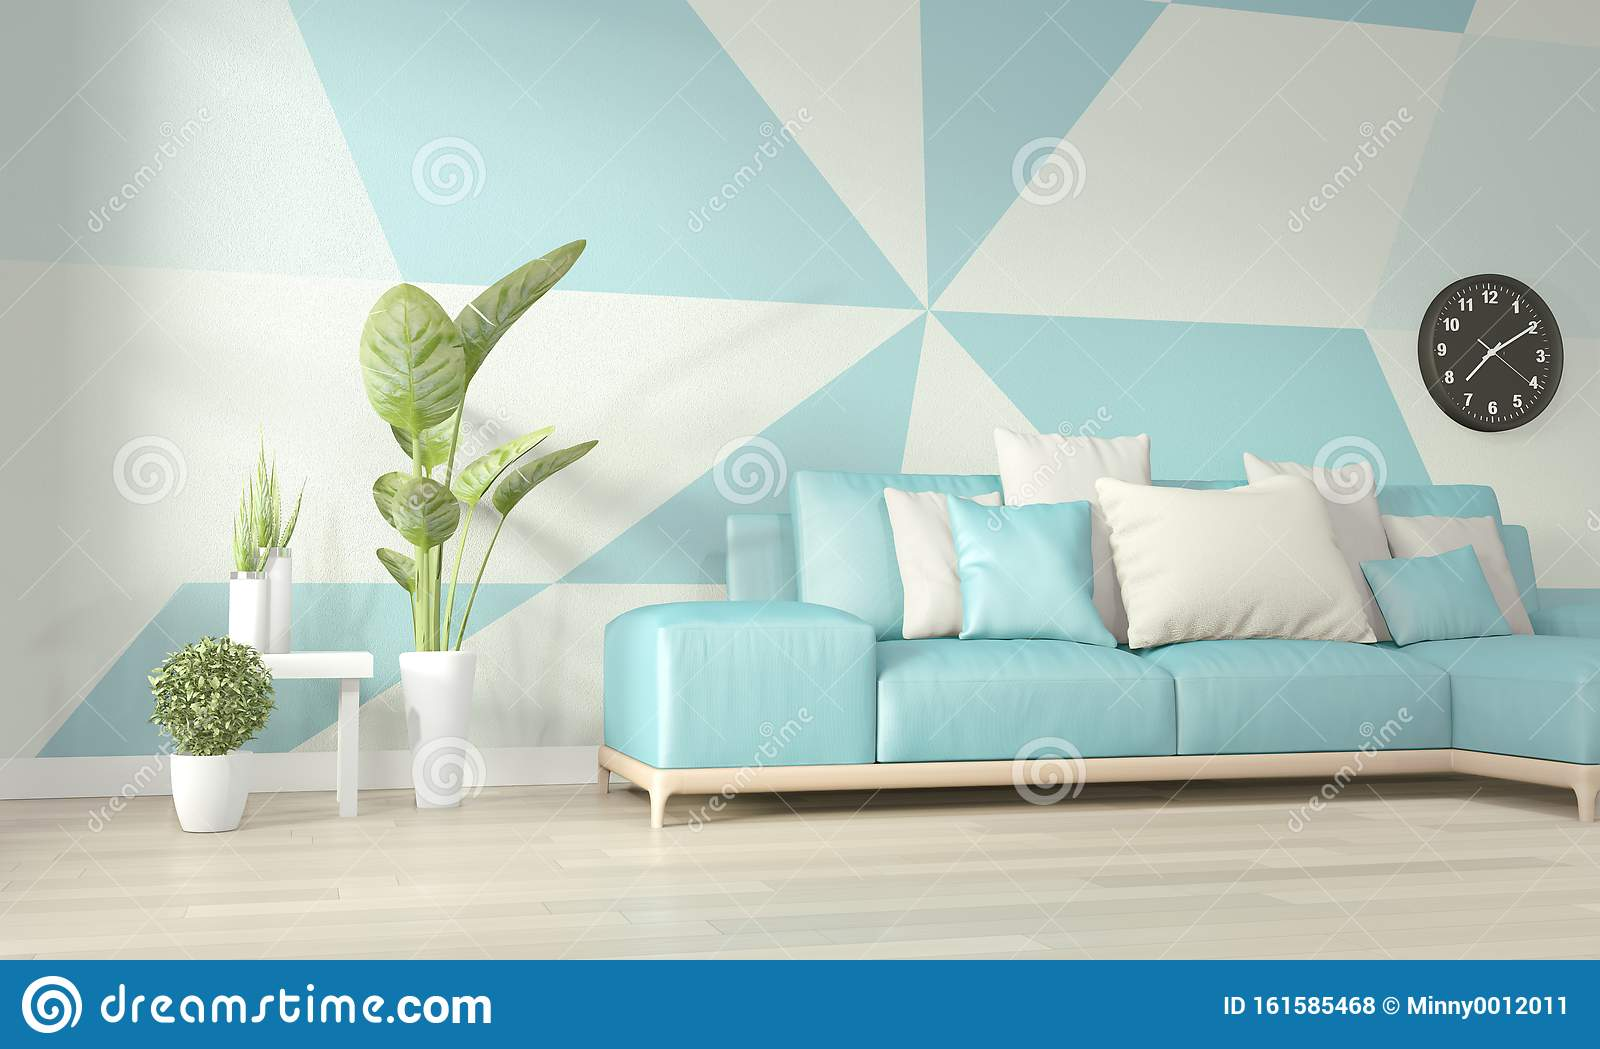 Interior Ideas Of Light Blue And White Living Room Geometric Wall Art Paint Design Color Full Style On Wooden Floor 3d Rendering Stock Illustration Illustration Of Living Indoor 161585468